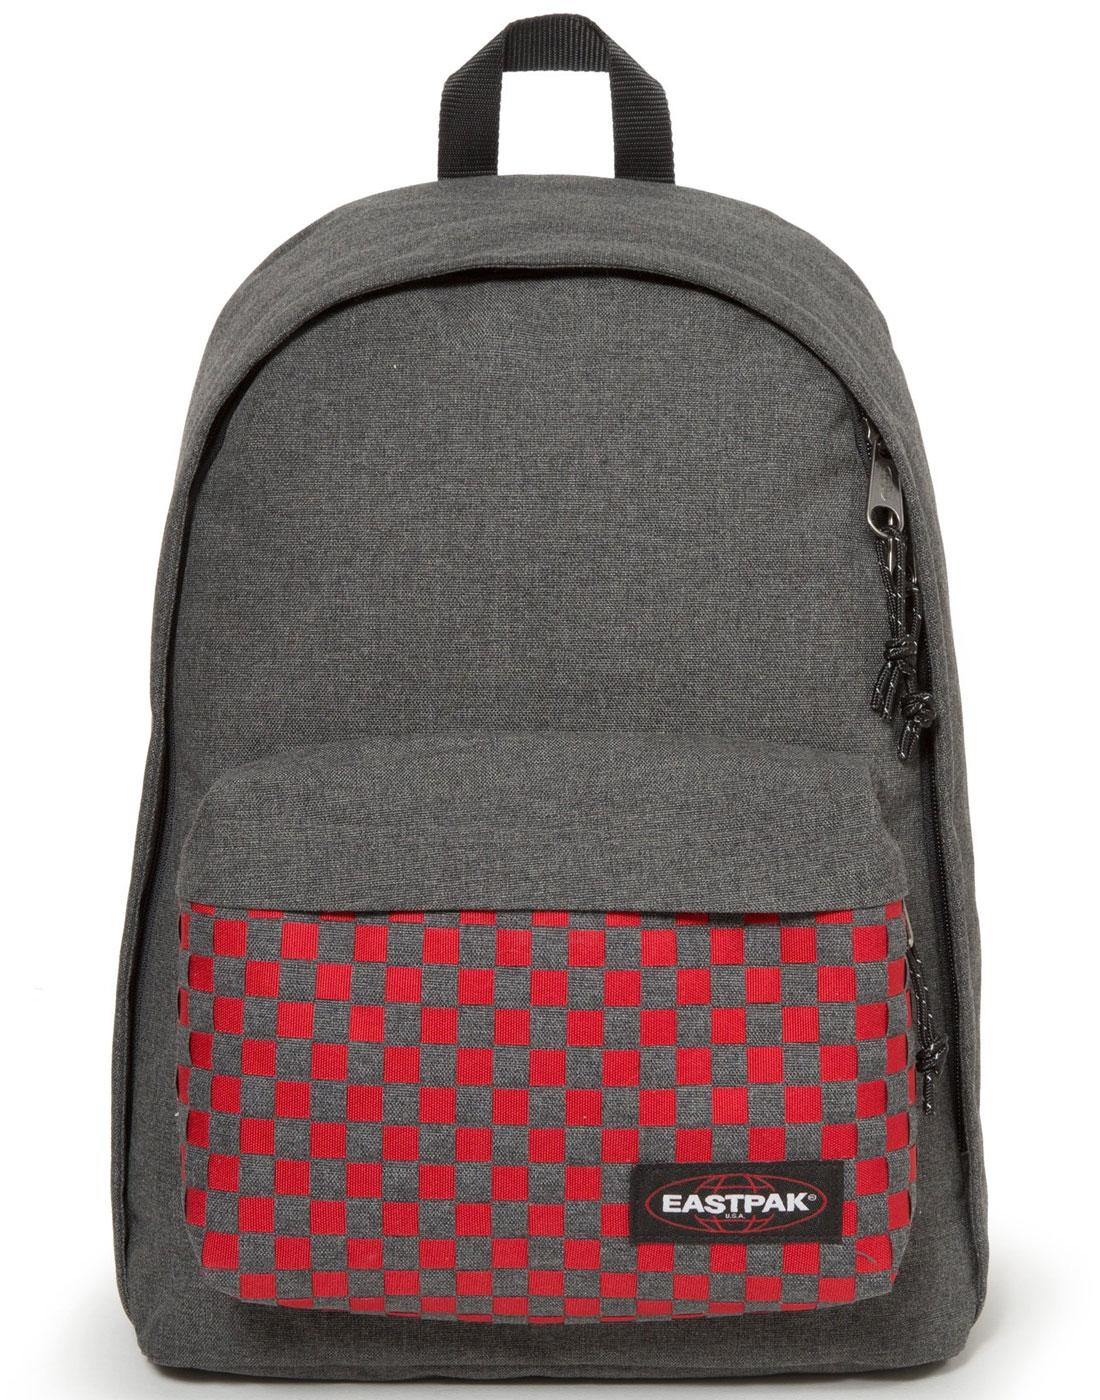 Out of Office EASTPAK Mod Ska Check Backpack RED